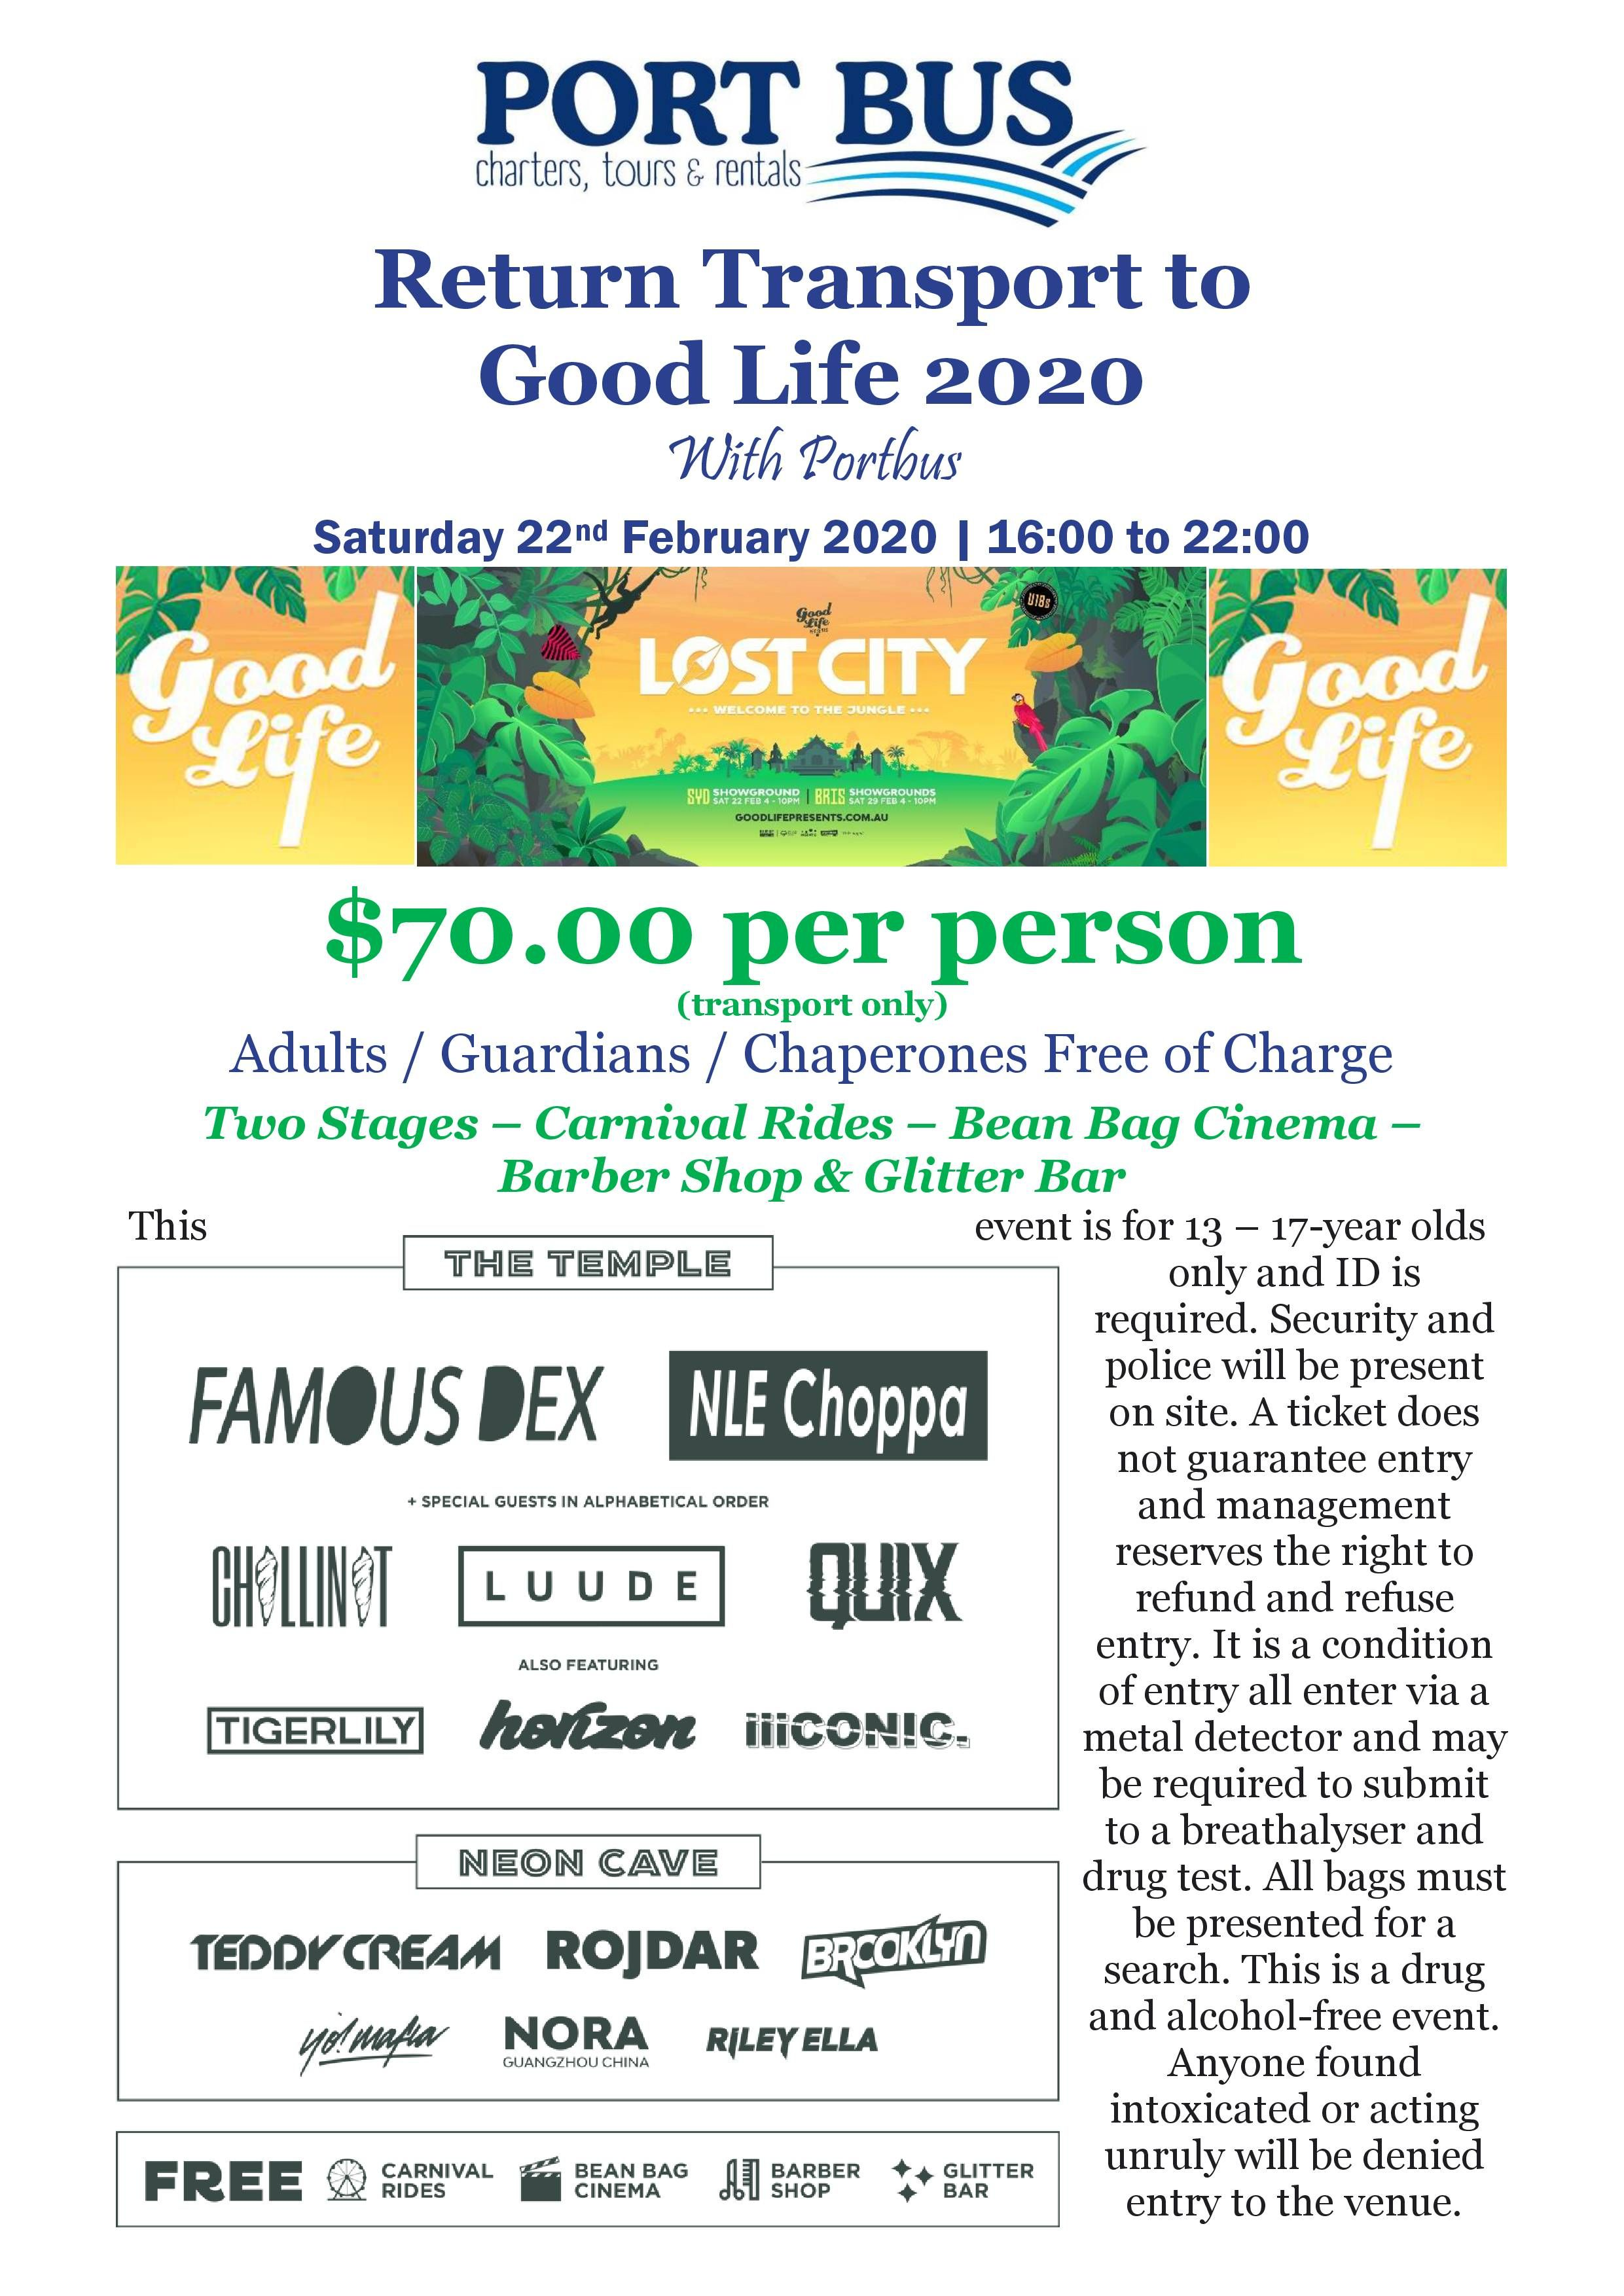 Return Transport To Good Life 2020 With Port Bus Saturday 22nd